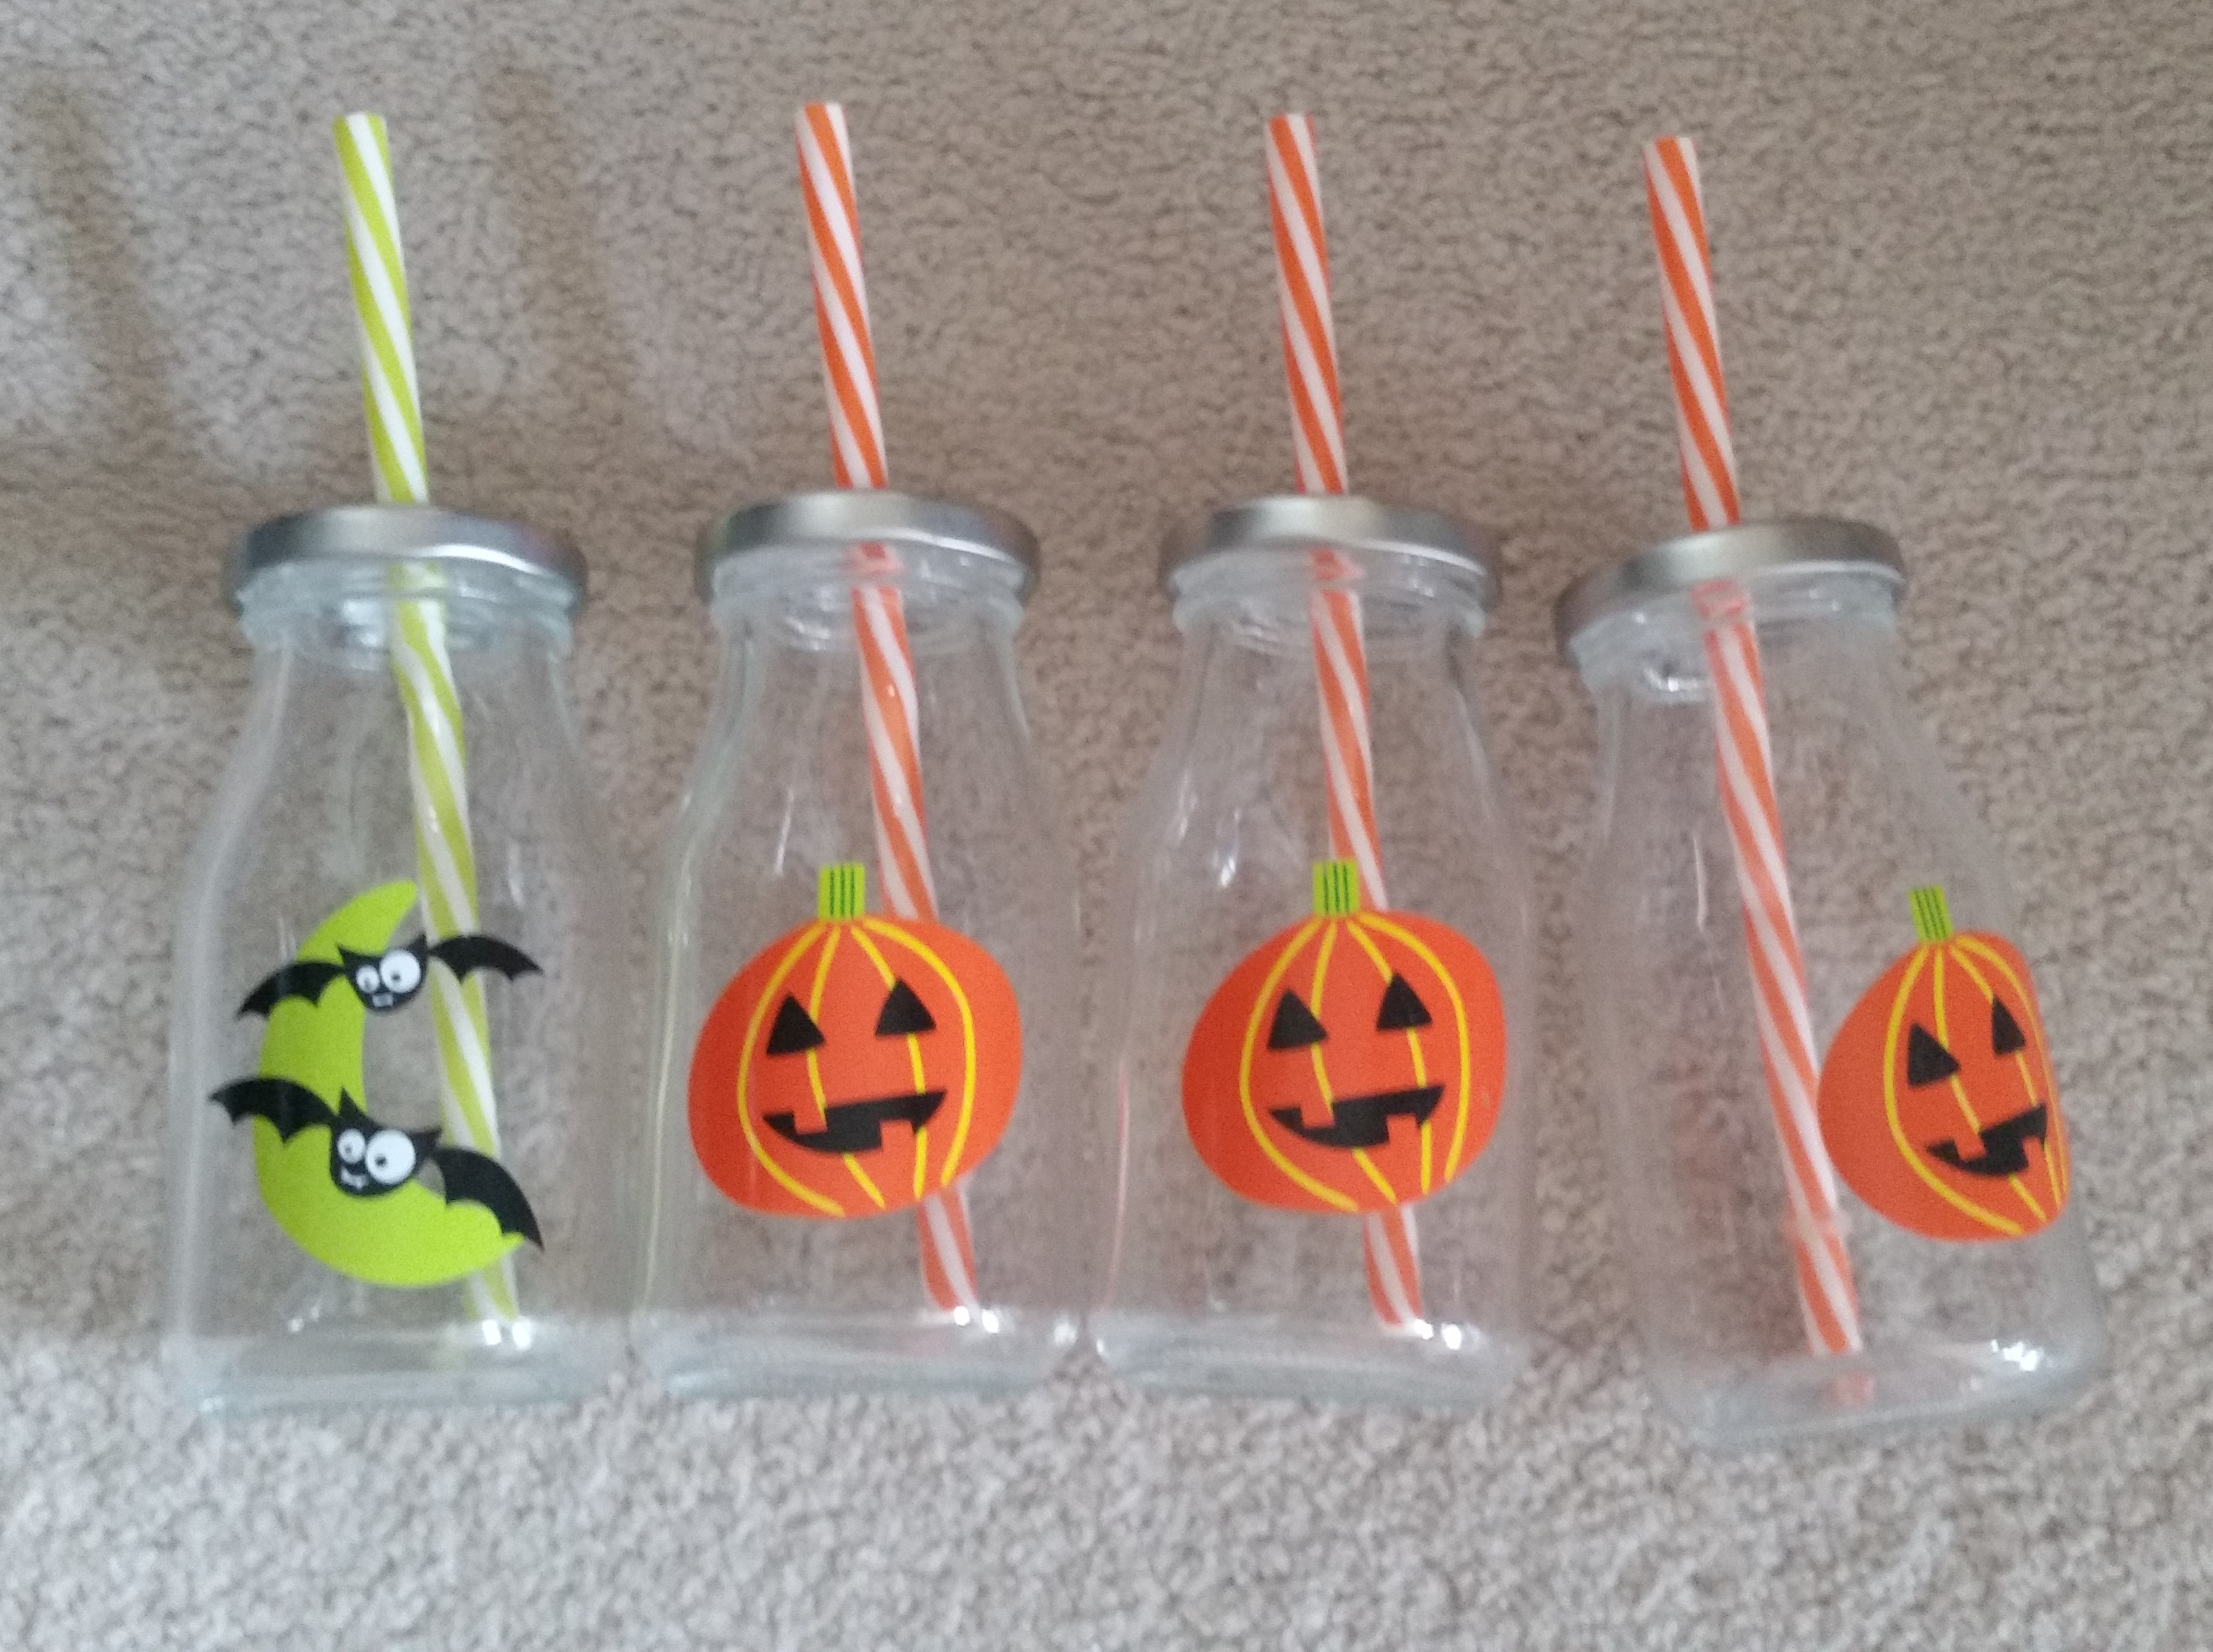 081700105 Small Glass Bottles with Straw - $5